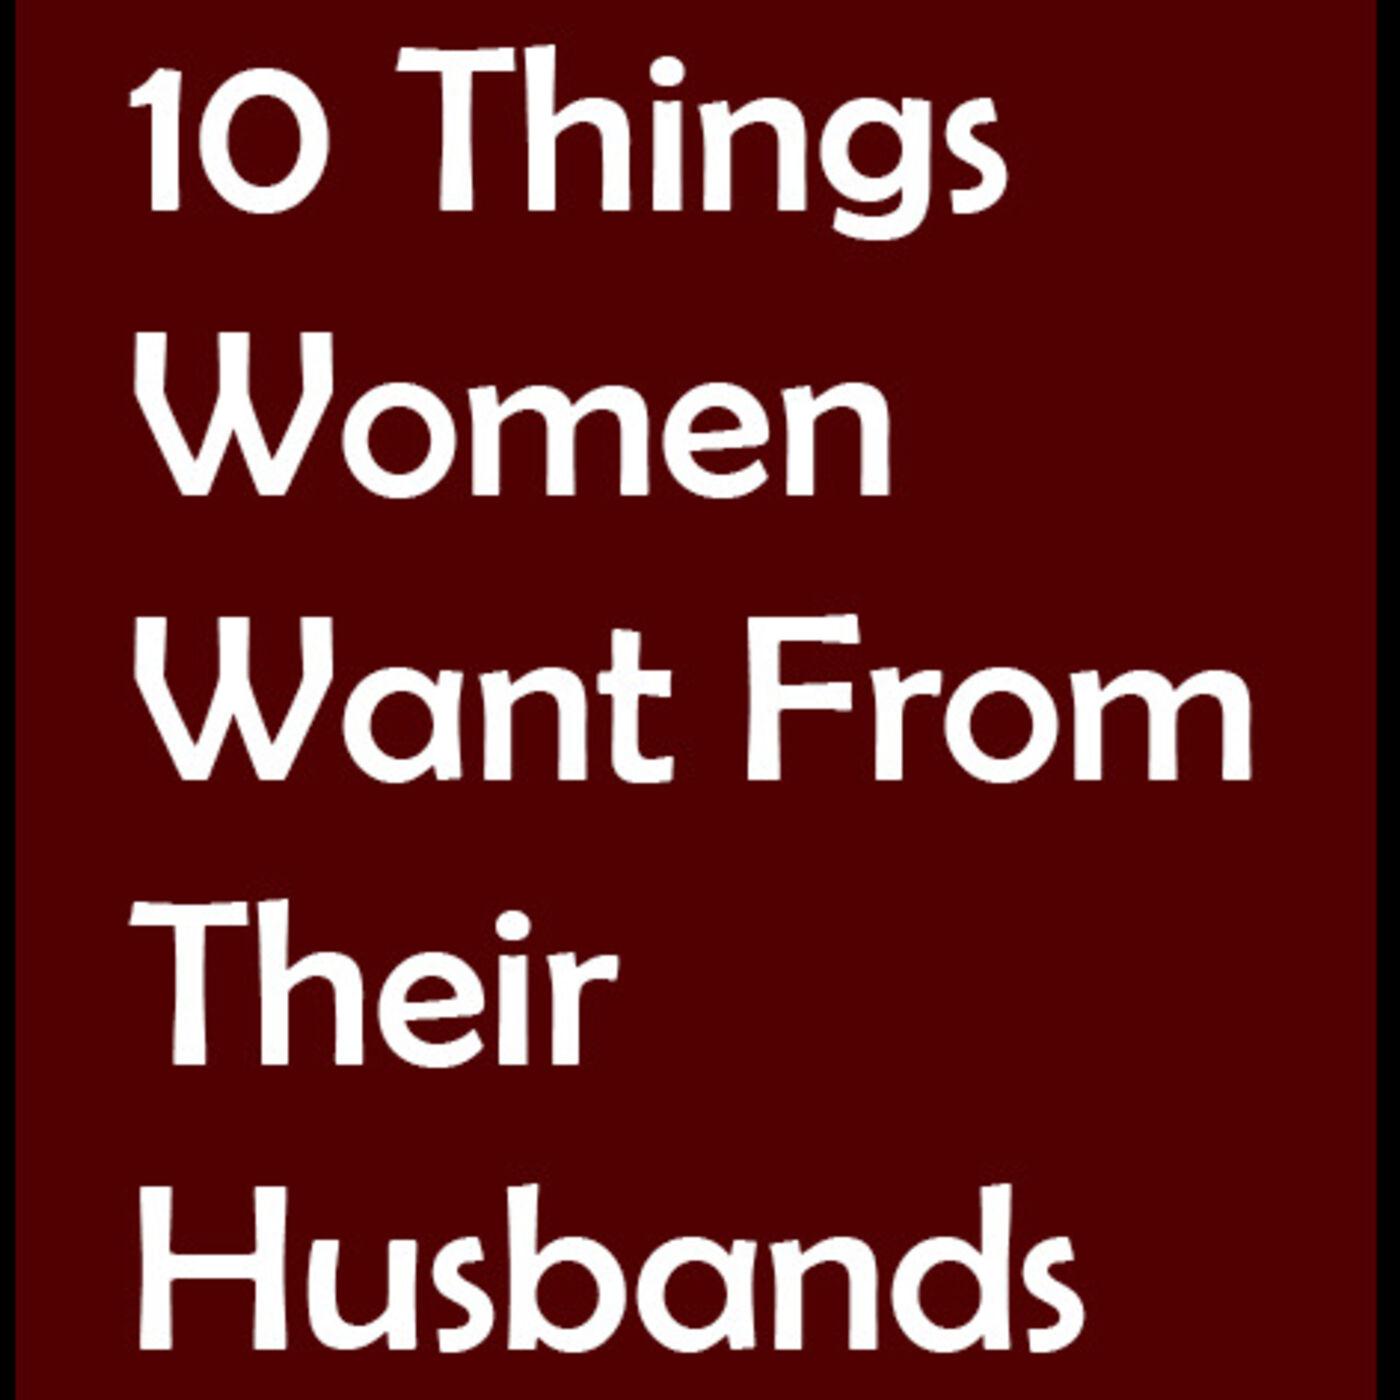 10 Things WIVES Want From Their Husbands